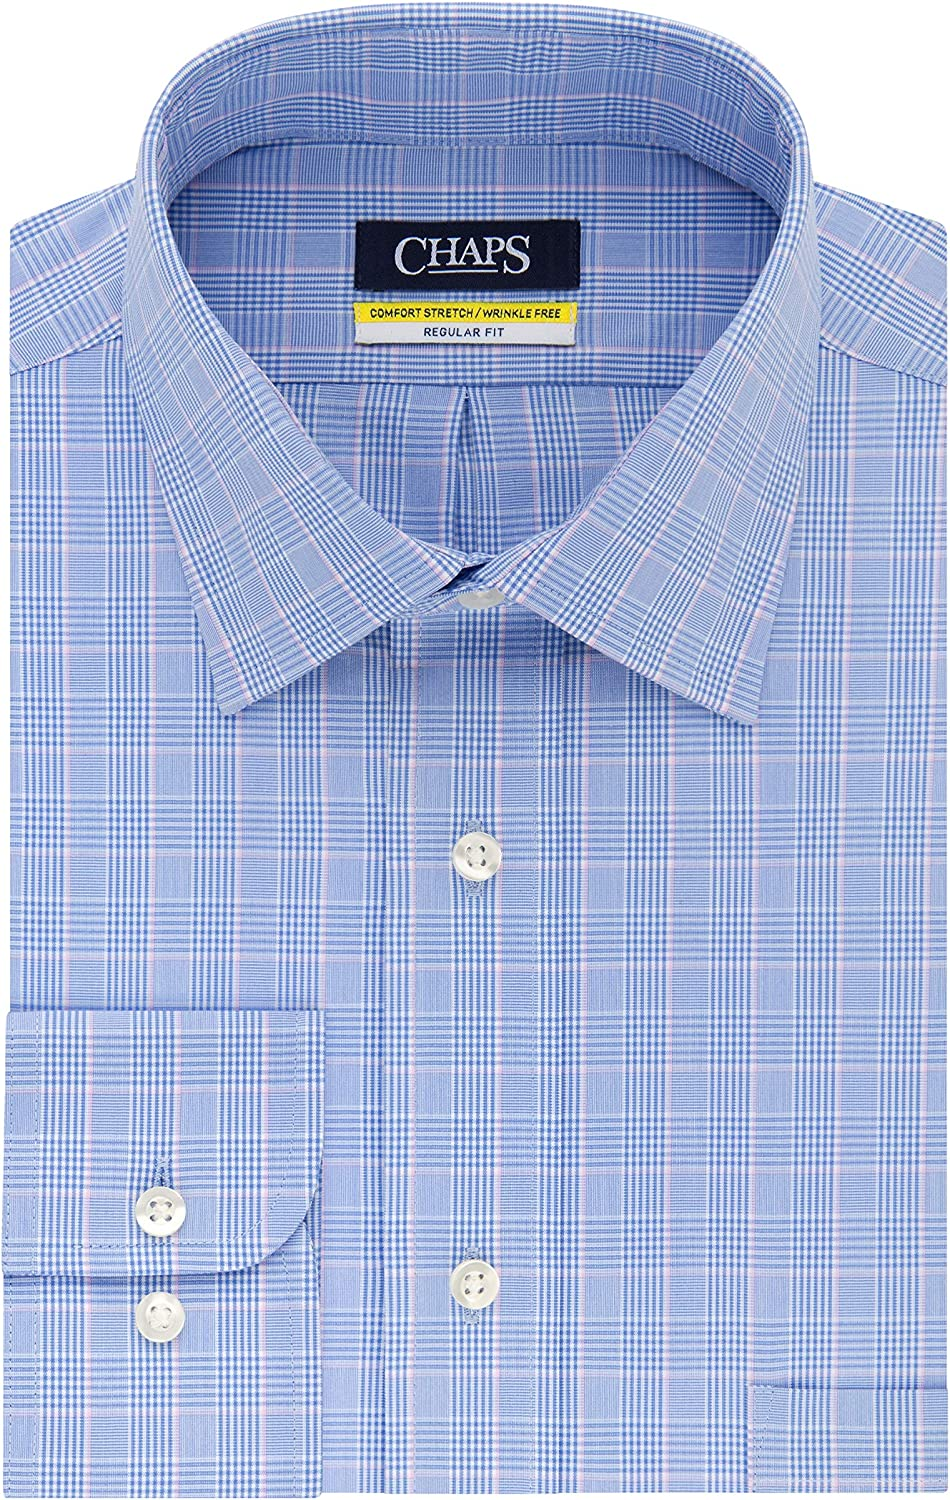 Chaps Mens Dress Shirt Regular Fit Stretch Collar Plaid, Blue ...